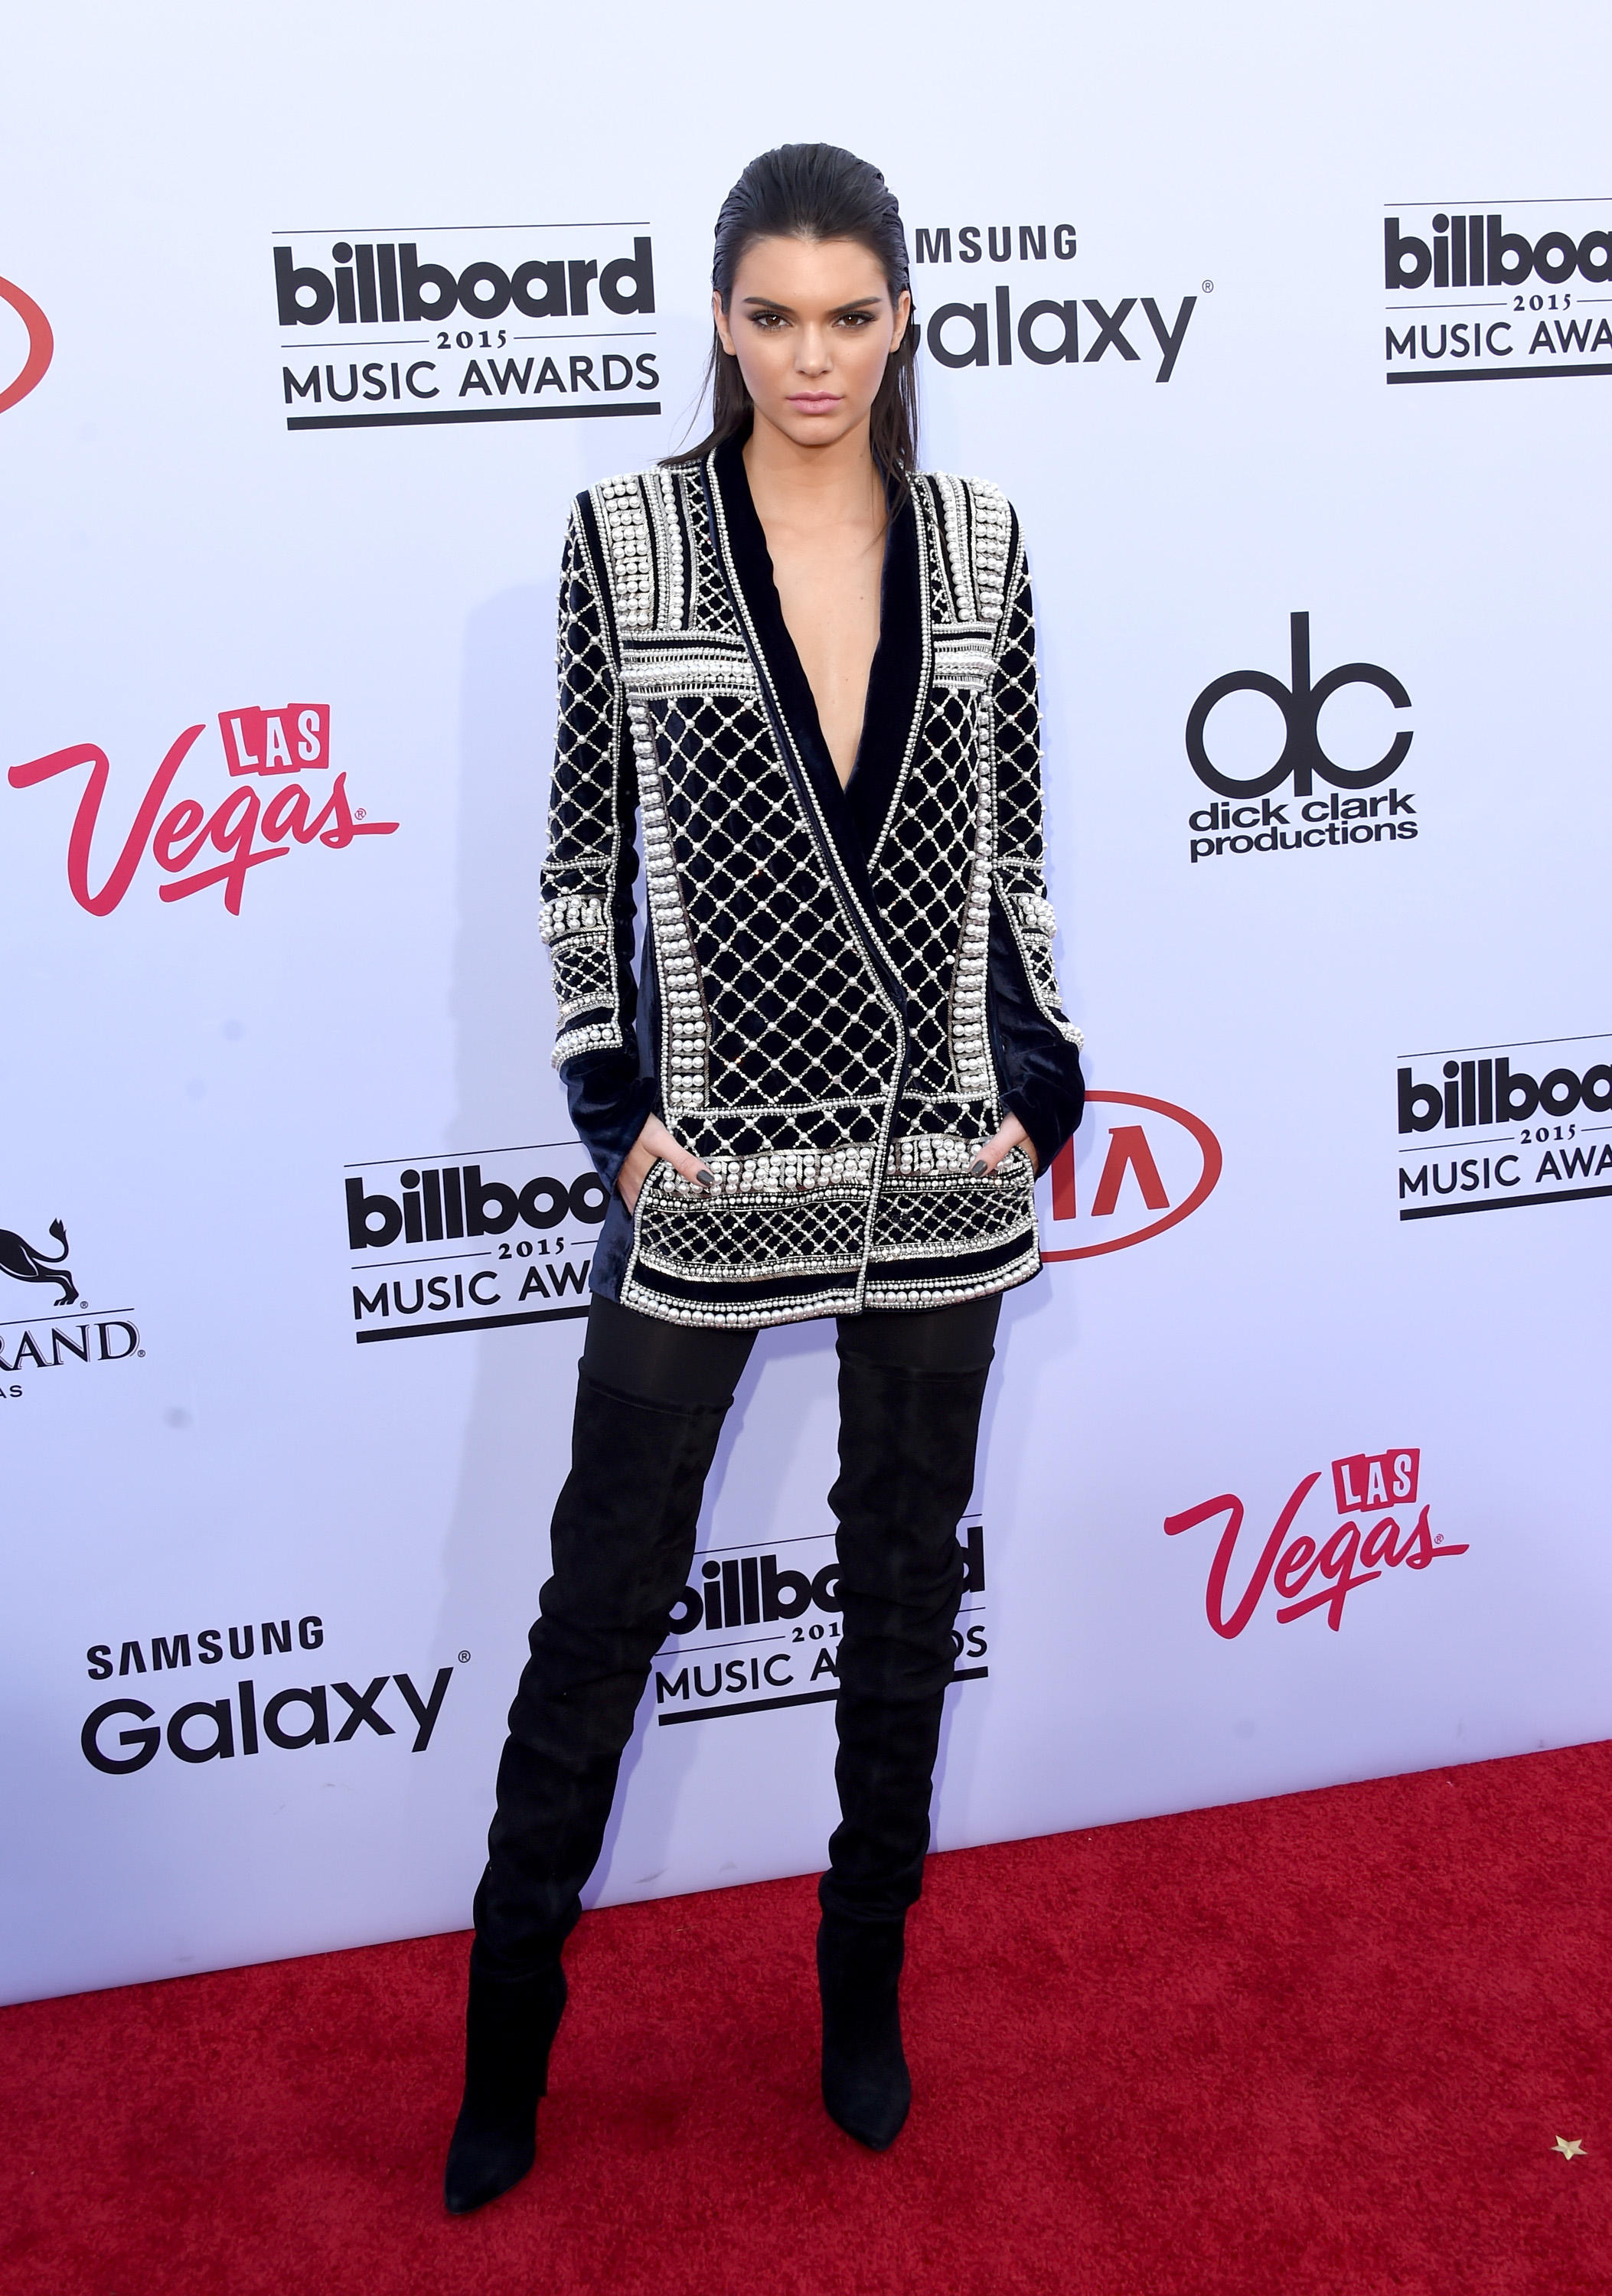 LAS VEGAS, NV - MAY 17:  Model Kendall Jenner wearing Balmain x H&M attends the 2015 Billboard Music Awards at MGM Grand Garden Arena on May 17, 2015 in Las Vegas, Nevada.  (Photo by Jason Merritt/Getty Images)